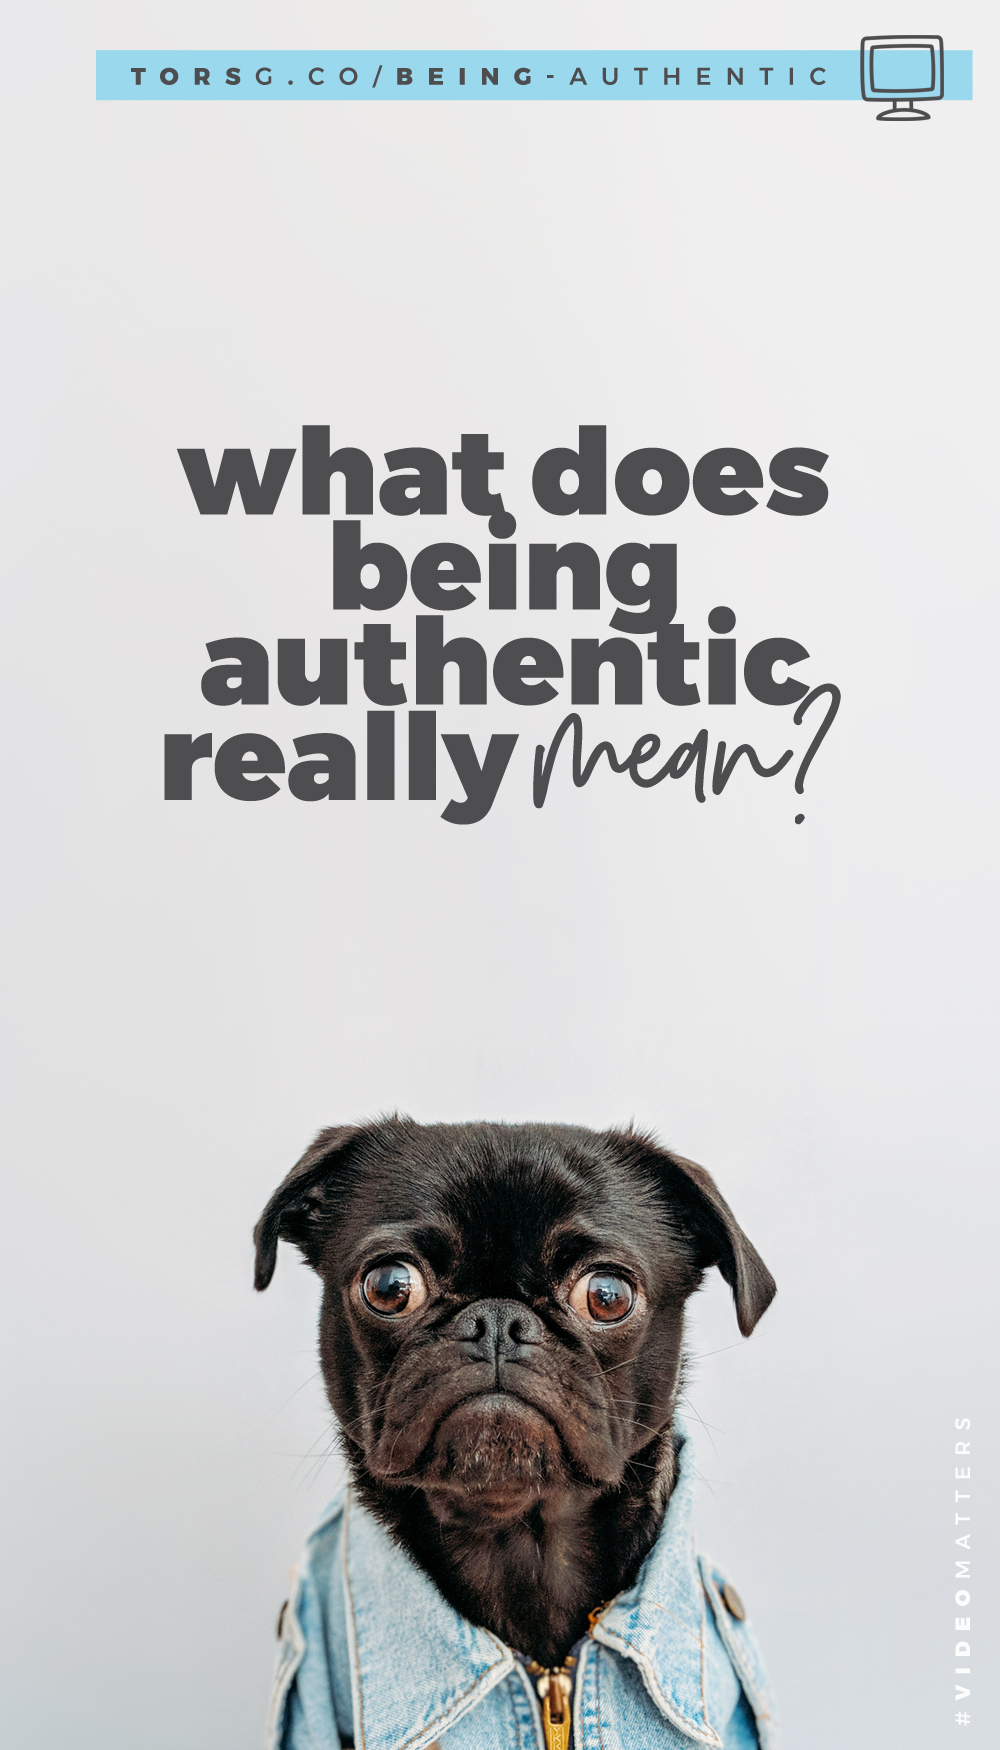 005-PINTEREST-What-Does-Being-Authentic-Really-Mean.jpg